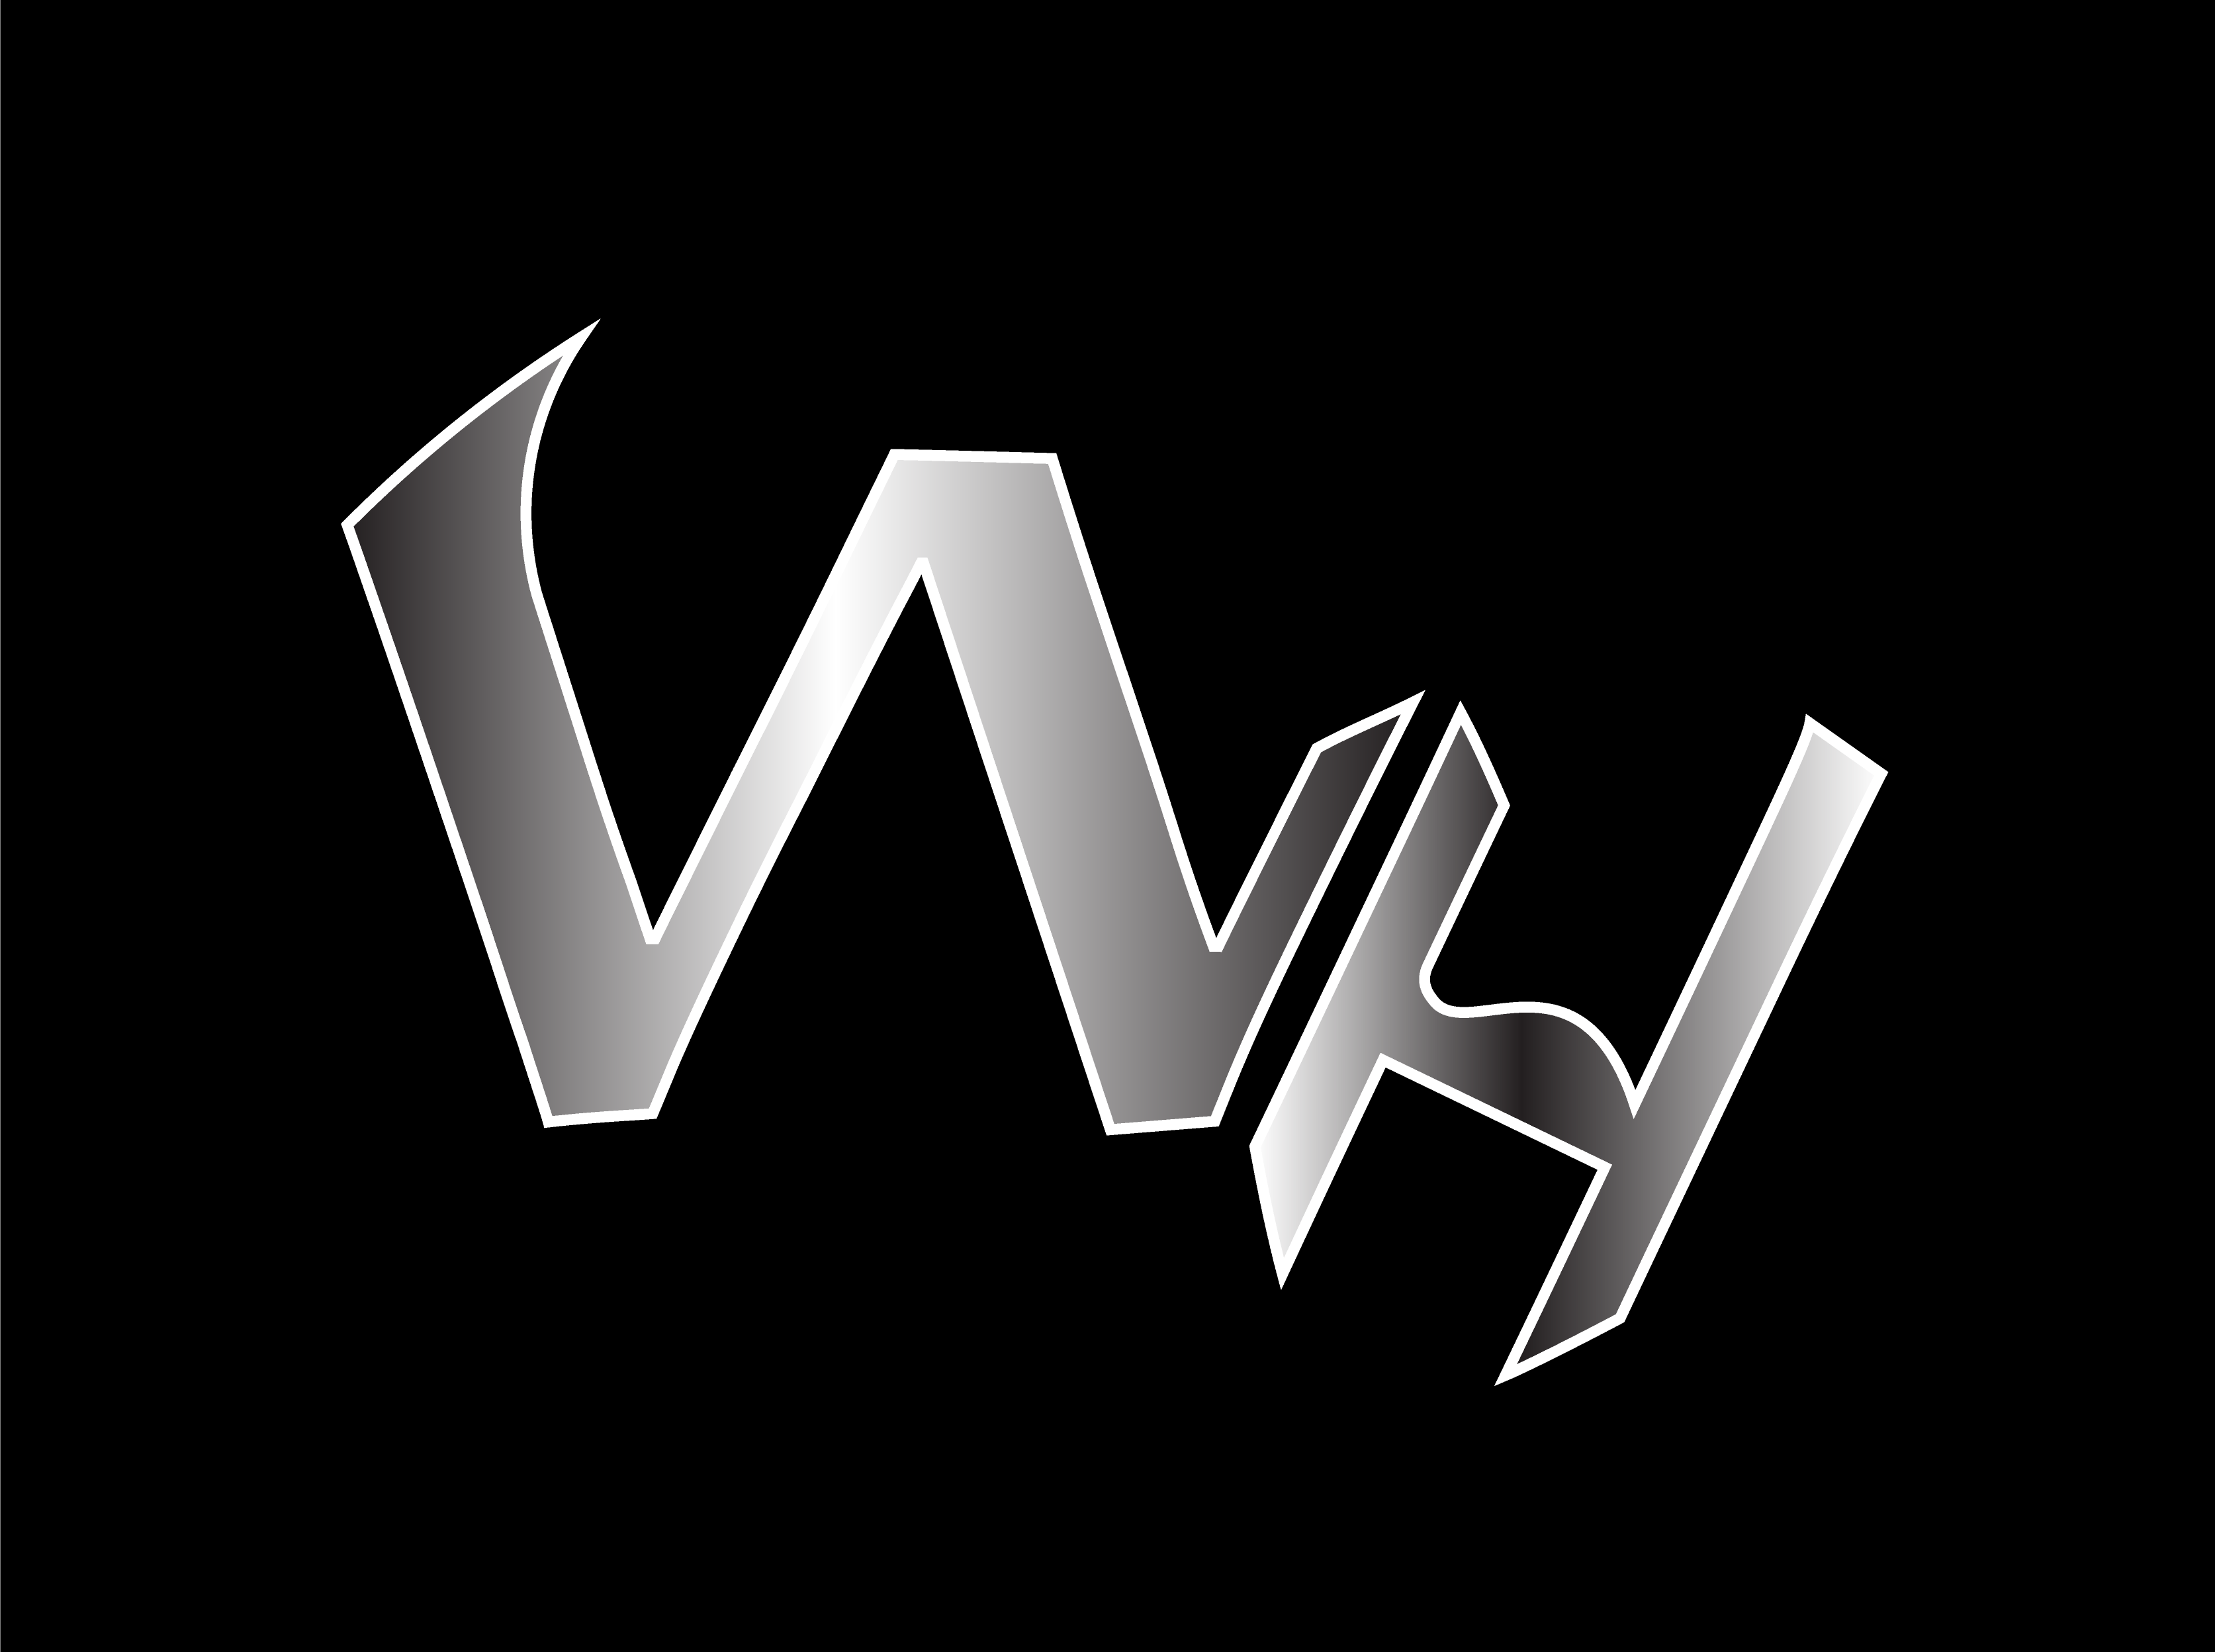 Letter W & H logo. Showcase your brand's personality with a logo designed just for your company.